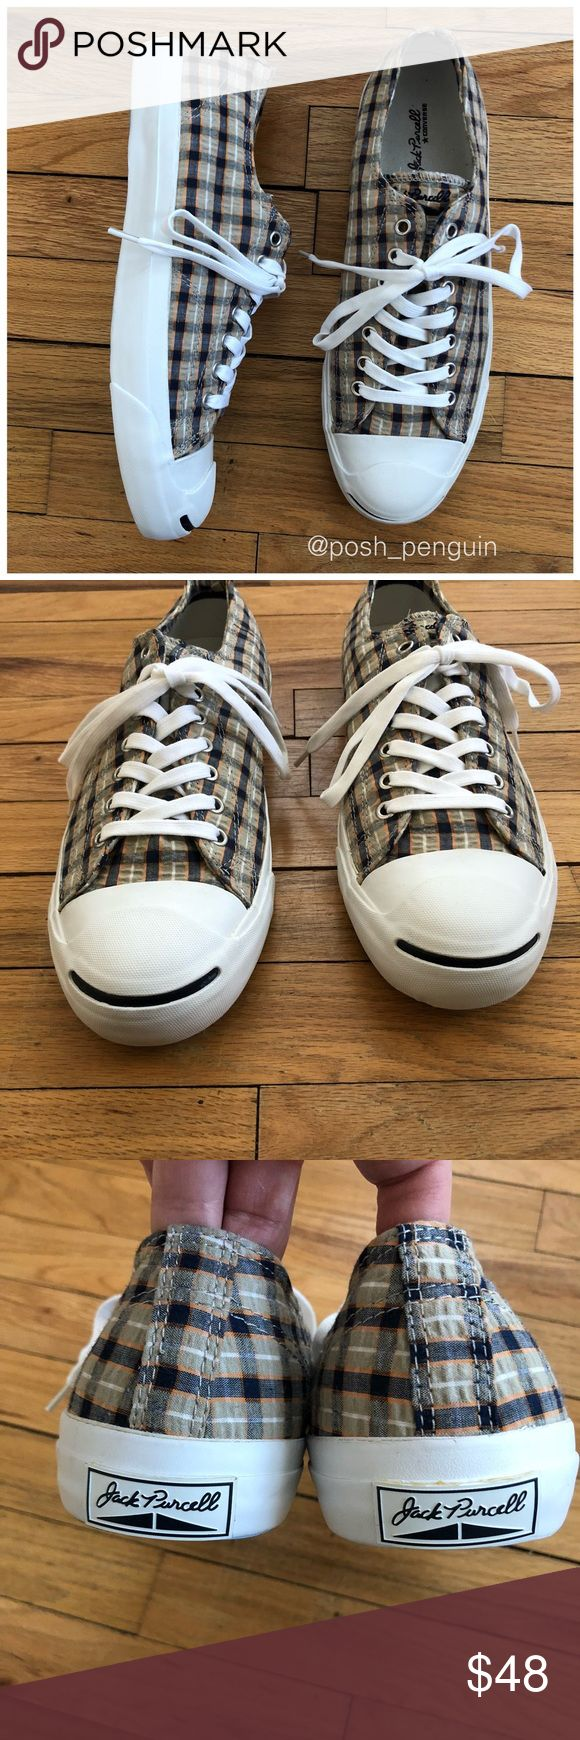 NEW Converse Jack Purcell LP OX Plaid Sneakers NEW Converse Jack Purcell LP OX Plaid Sneakers. Textured fabric upper in a checkered plaid pattern with signature Jack Purcell white toe caps. New without box. Only tried on and worn for a few min in the house. Only selling because they are too big on me. Photos are best descriptors. Size 10 Converse Shoes Sneakers